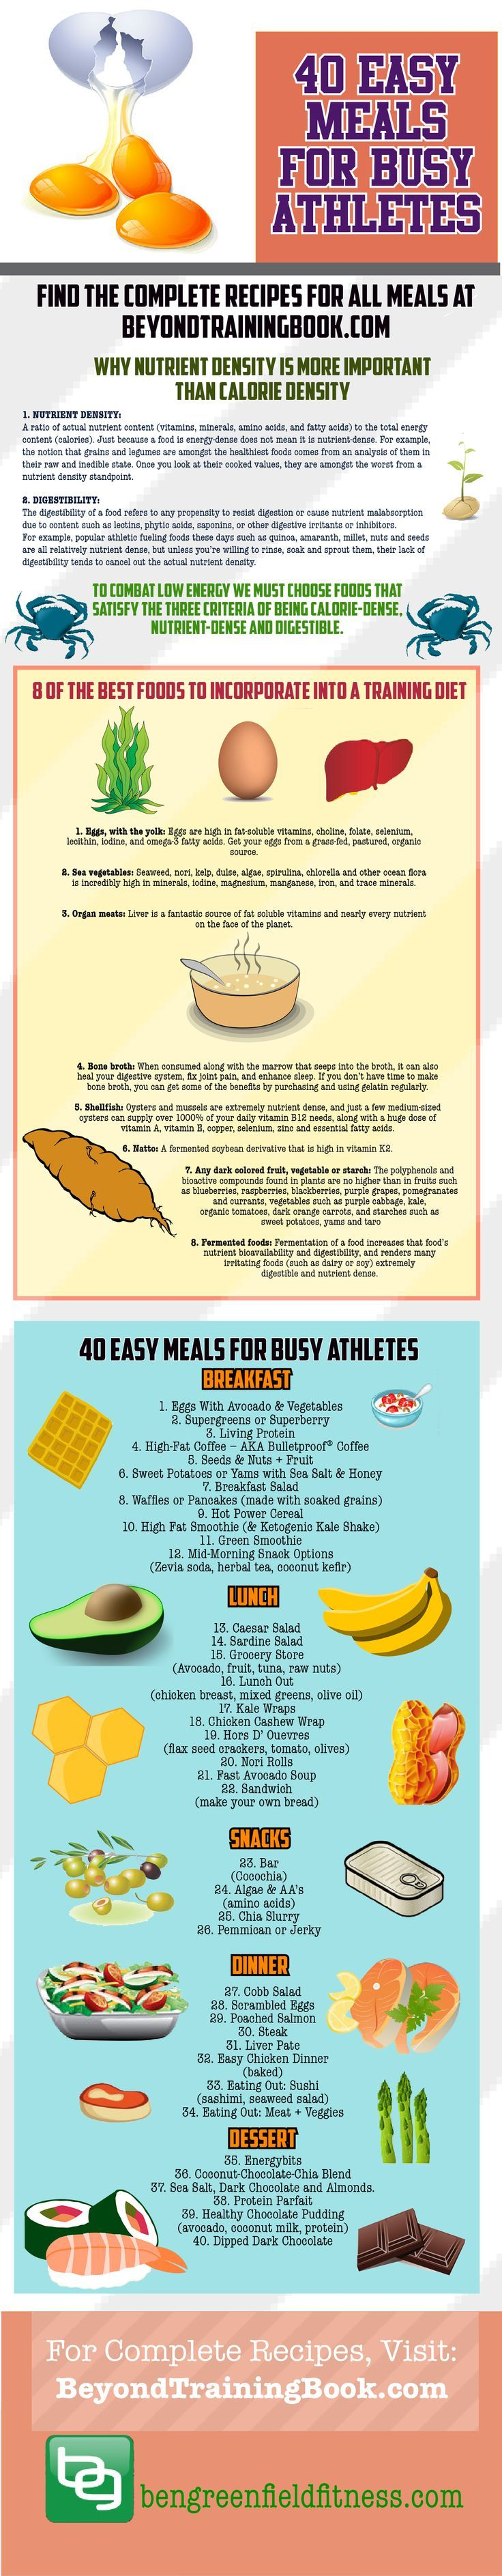 40 Easy Meals for Busy Athletes from Beyond Training diet Sports Nutrition Soccer Nutrition #Soccer